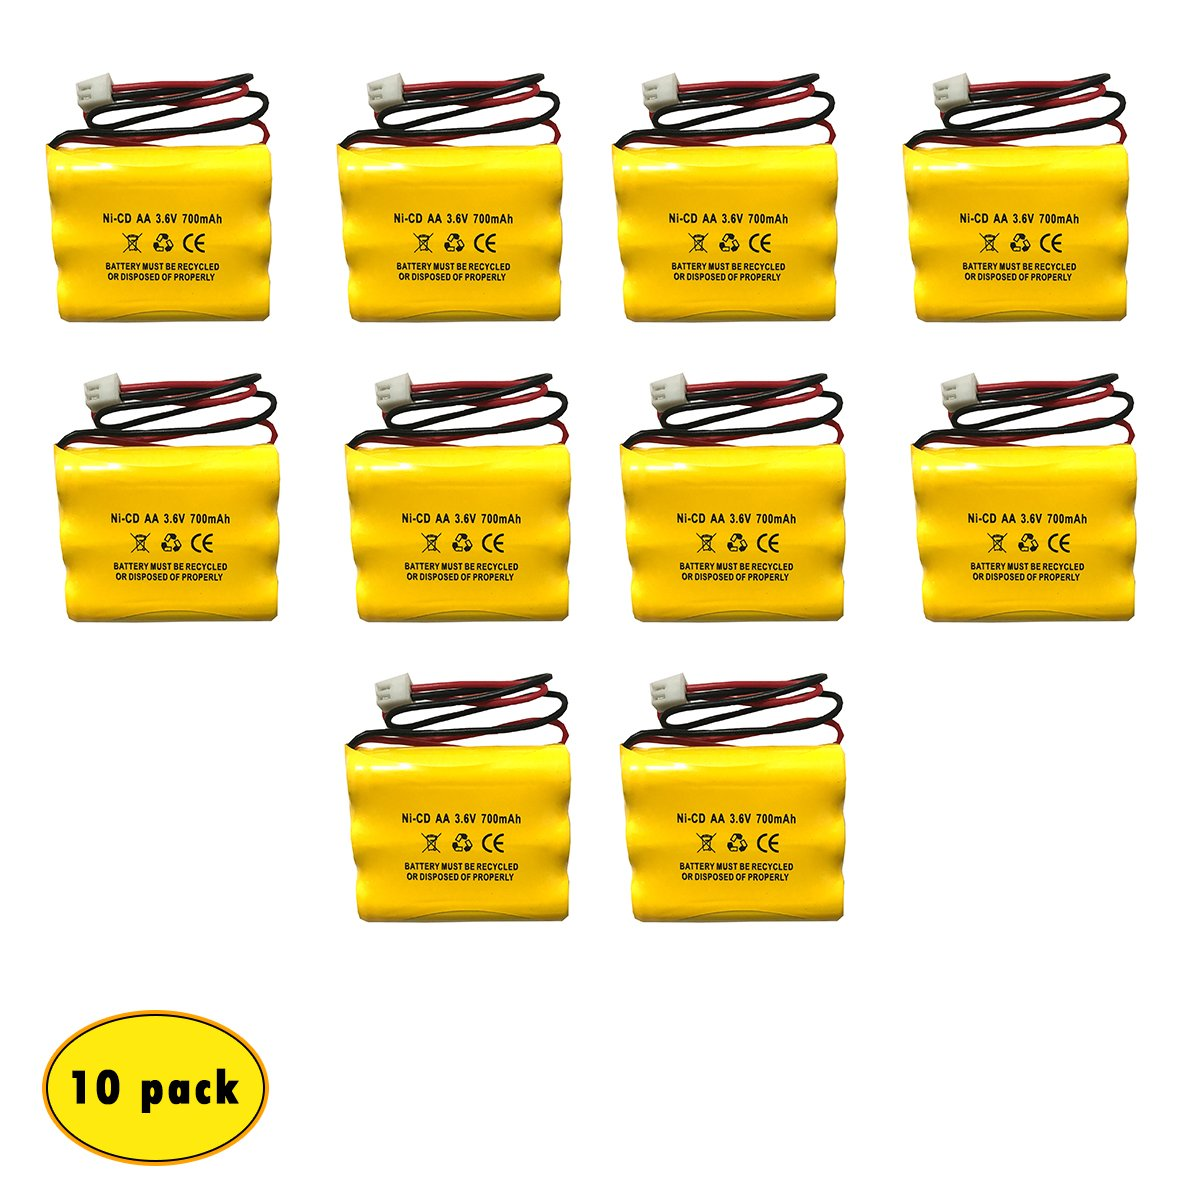 3.6V 700mAh 900mAh NiCad Exit Sign Battery Emergency Lighting (10 Pack) Lowes 253799 and Lowes OSA230 Unitech 6200RP Unitech AA900MAH Unitech LEDR-1 by Battery Hawk